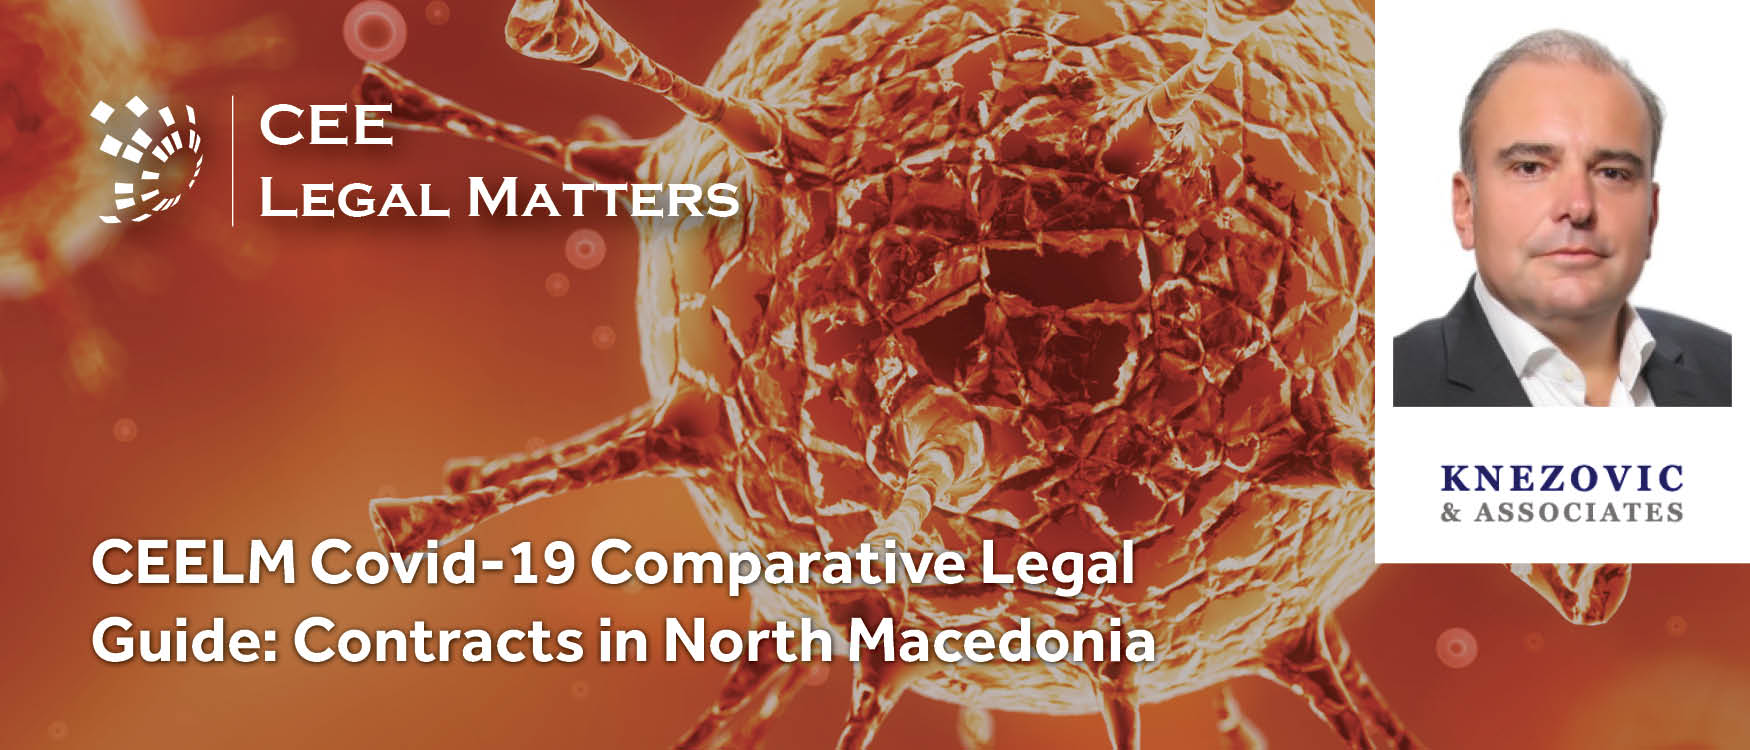 CEELM Covid-19 Comparative Legal Guide: Contracts in North Macedonia